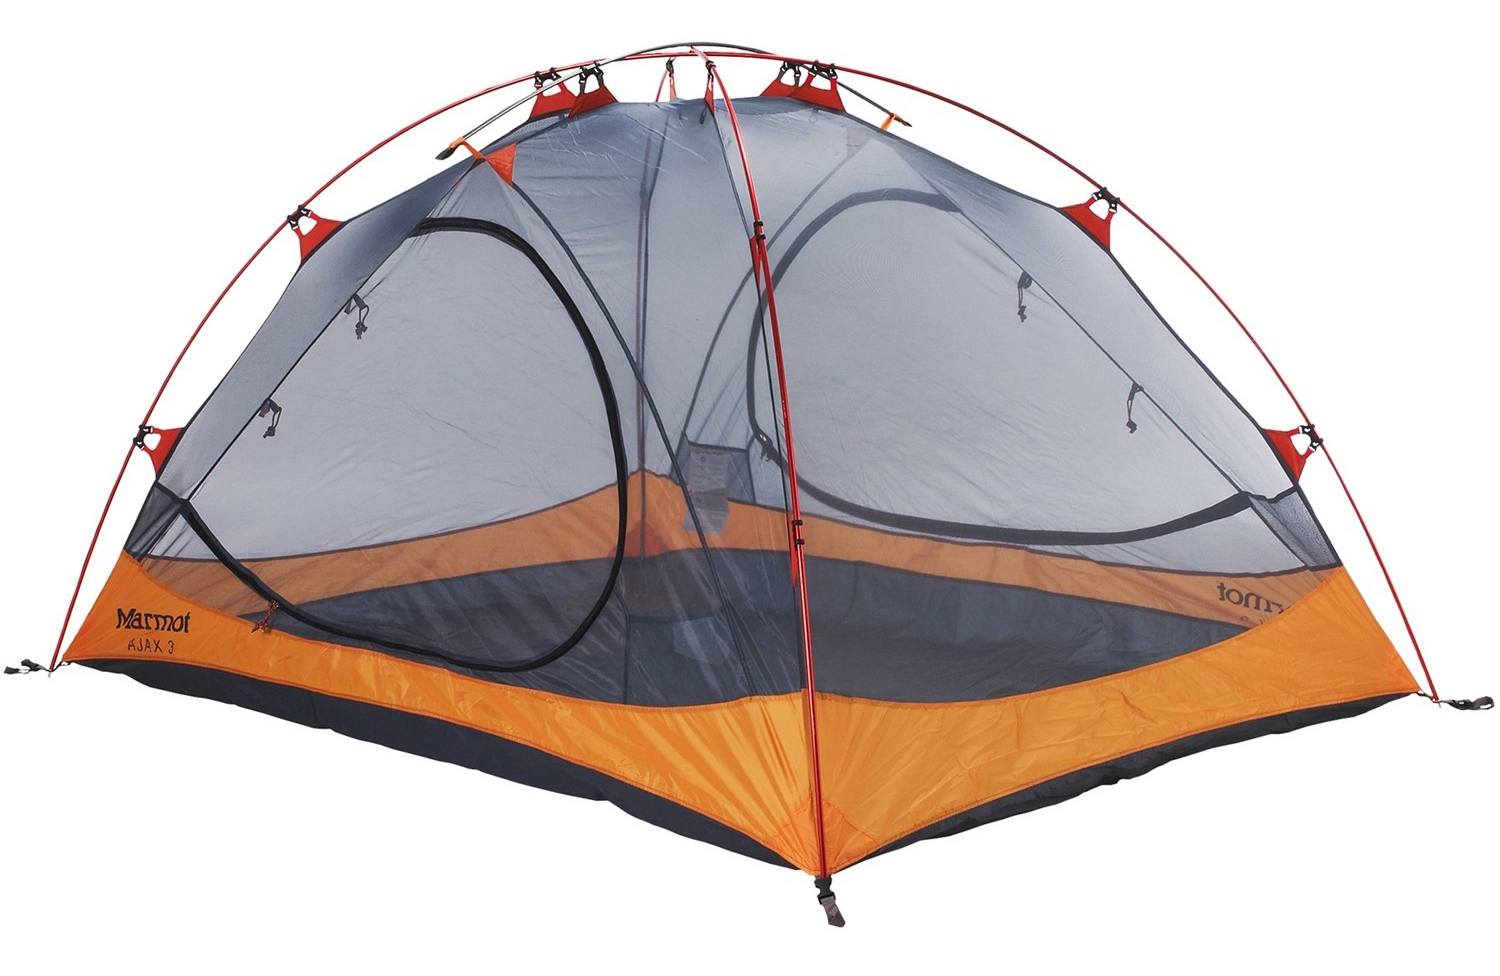 ... 3 person backpacking tent ever!! The ...  sc 1 st  analoggirl - WordPress.com & Gear Review: Marmot Ajax 3 Tent | :::analog:::girl:::world:::